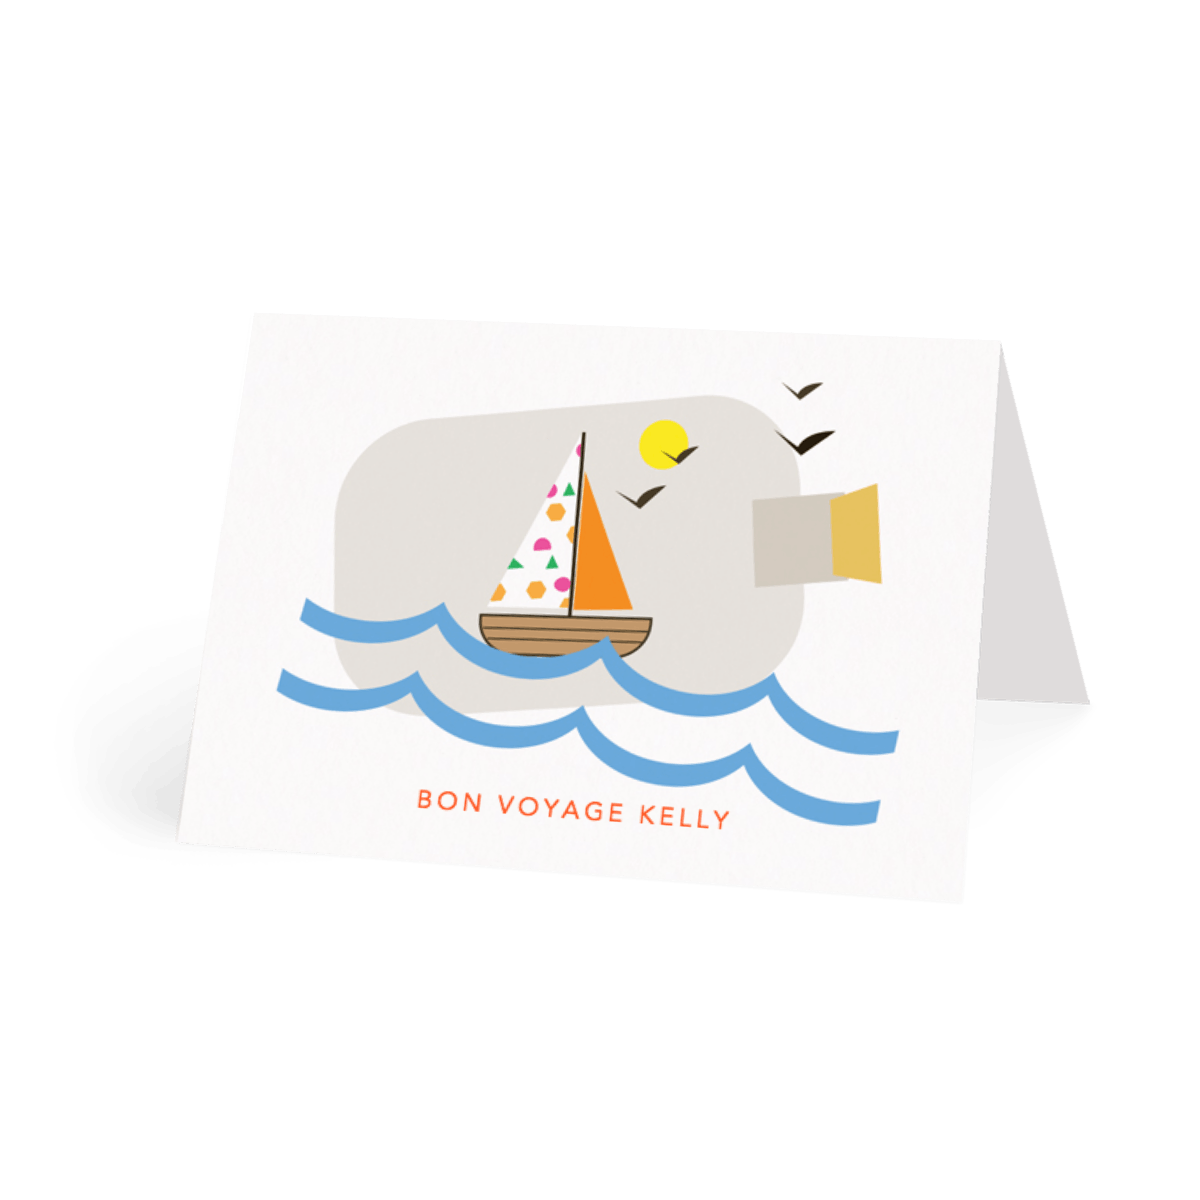 Https%3a%2f%2fwww.papier.com%2fproduct image%2f2722%2f14%2fsailboat in a bottle 730 front 1453910427.png?ixlib=rb 1.1